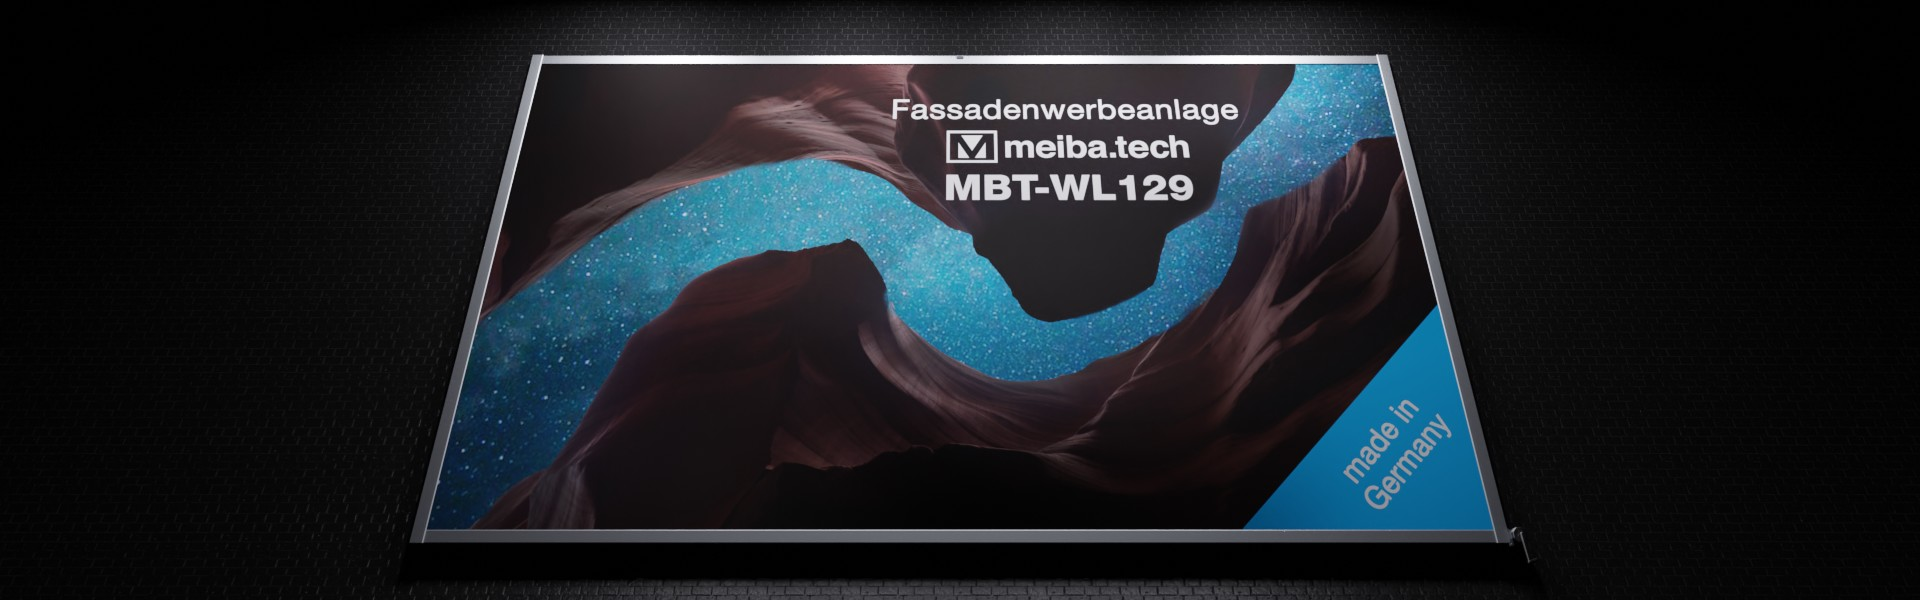 Facade advertising system MBT-WL129 with banner lift, illuminated, bottom view